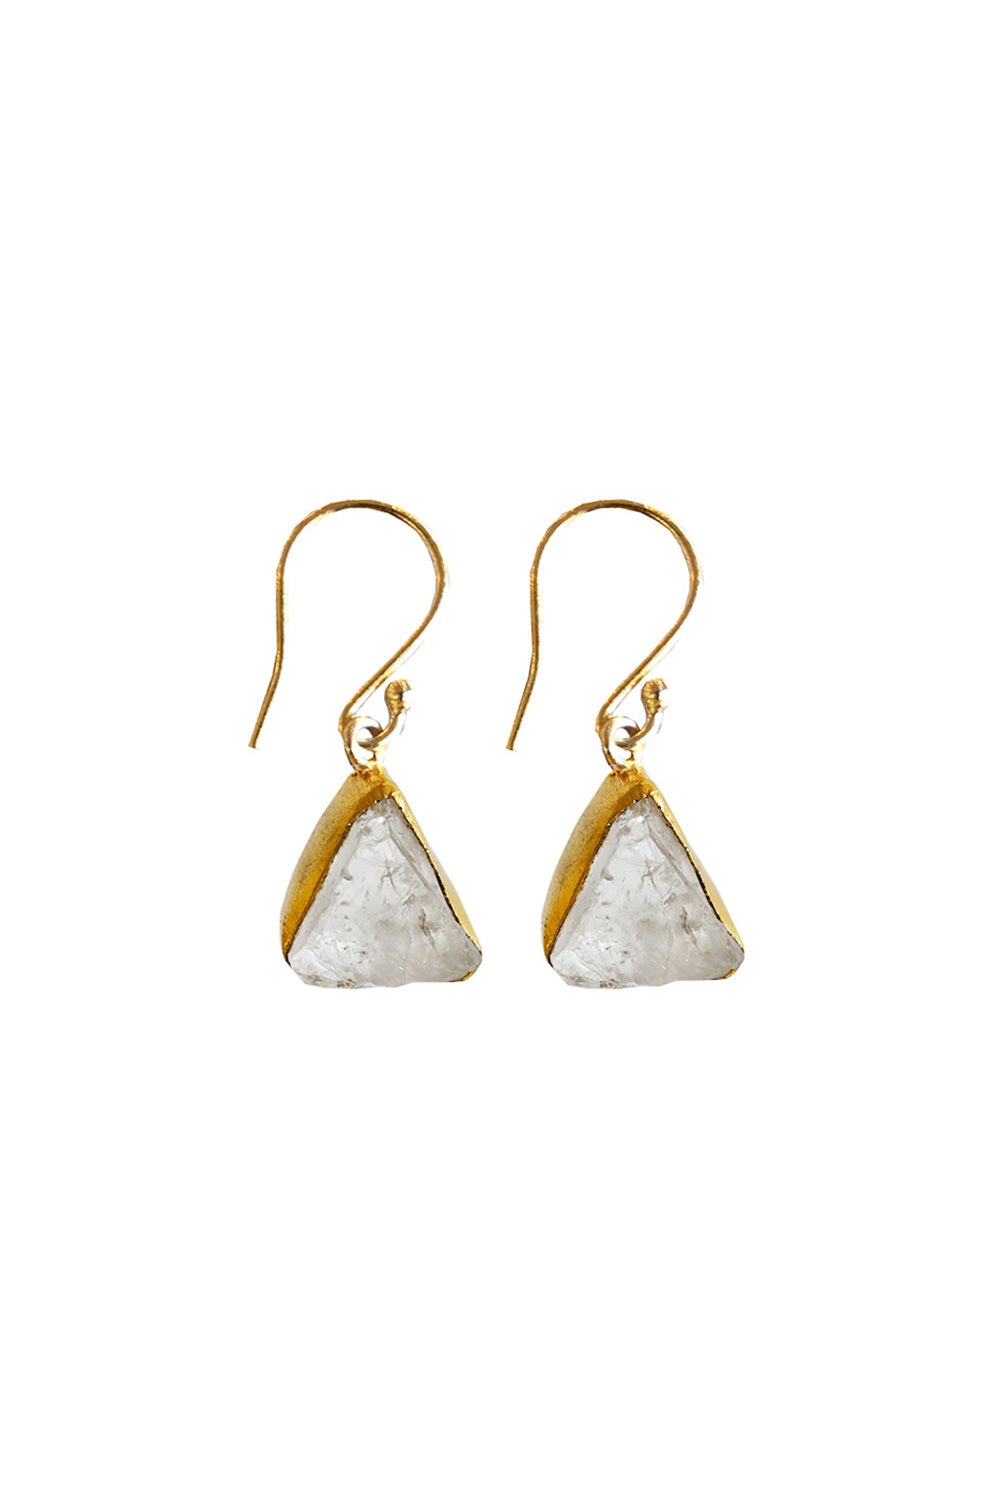 Caria Turkish Earrings - Kabana Shop